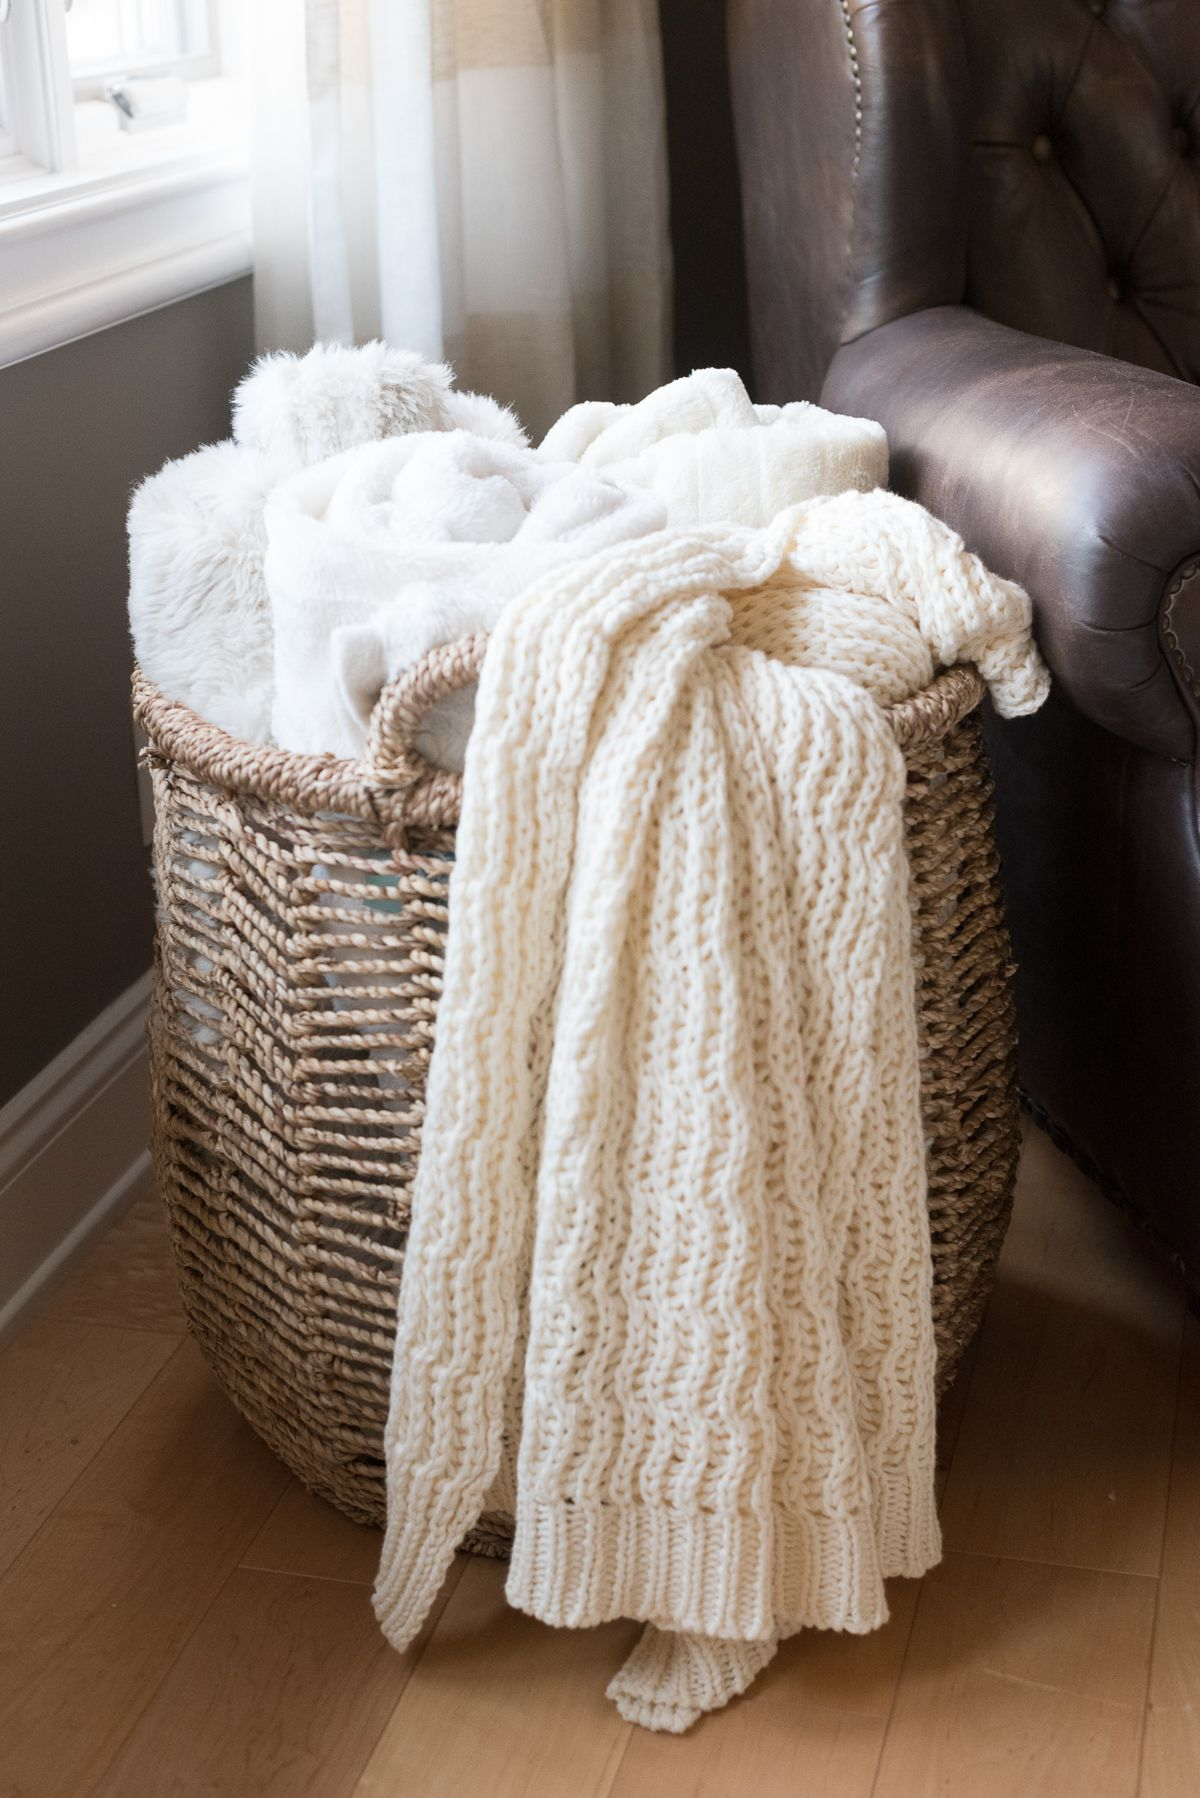 Genial @homegoods Basket Filled With Cozy Throw Blankets. #HelloGorgeous